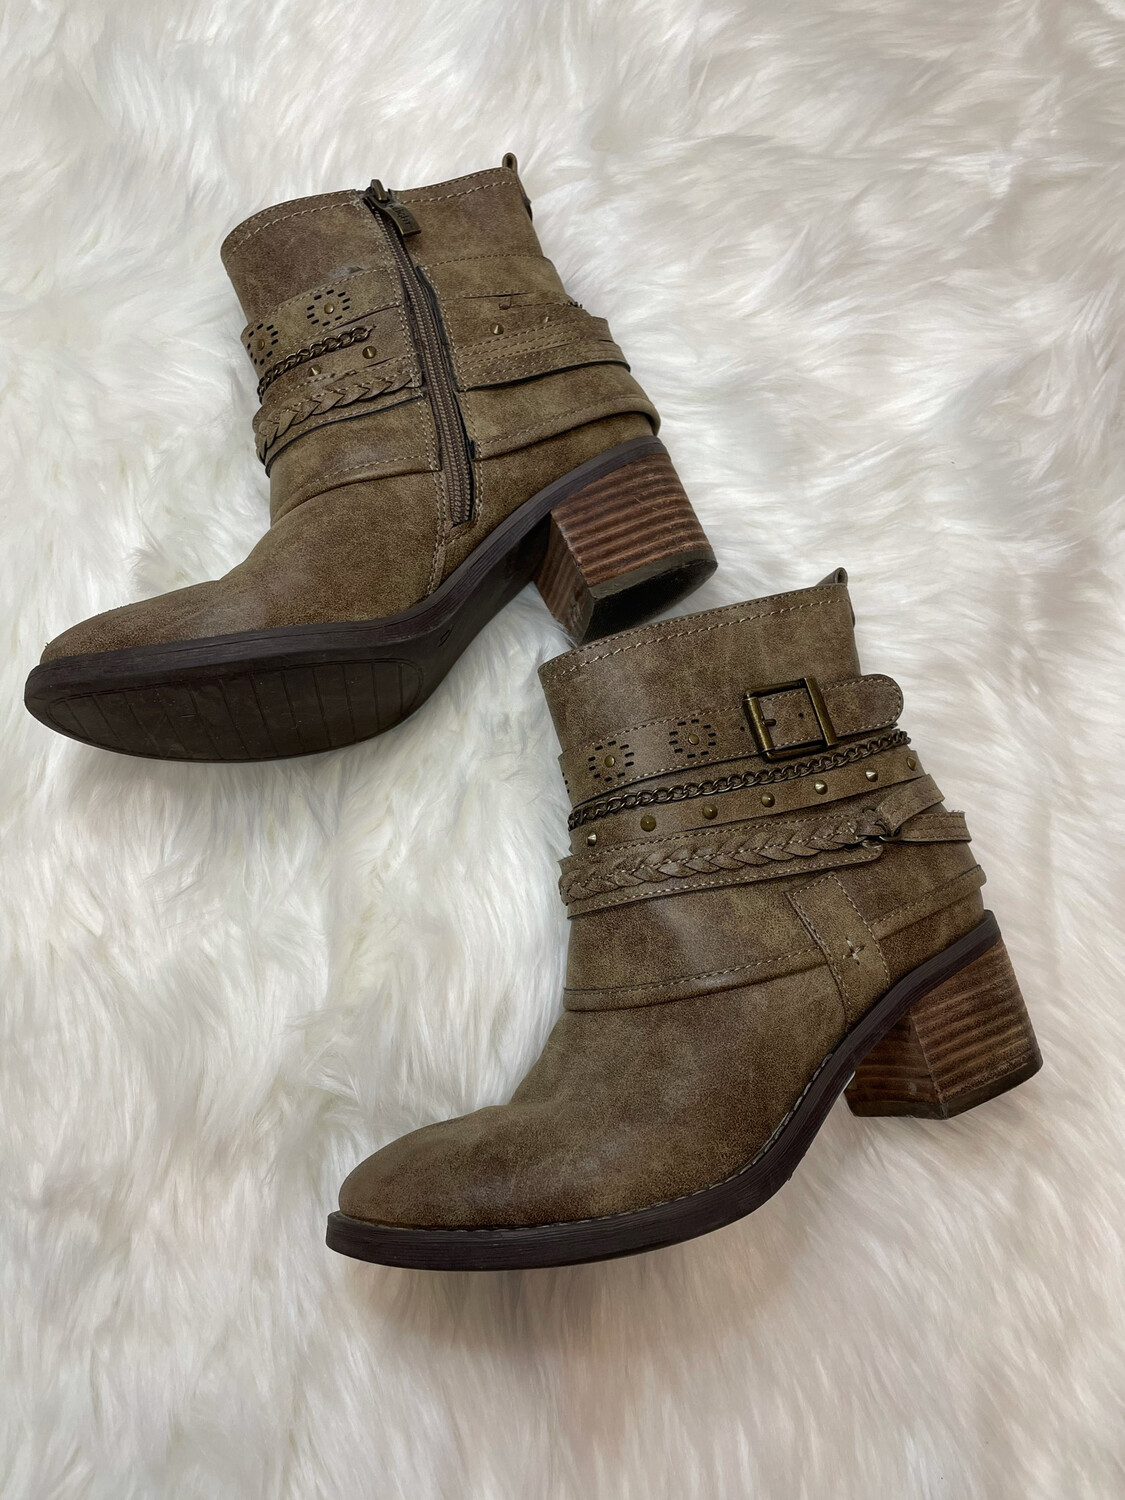 Limelight Taupe Embellished Ankle Boots - Size 7